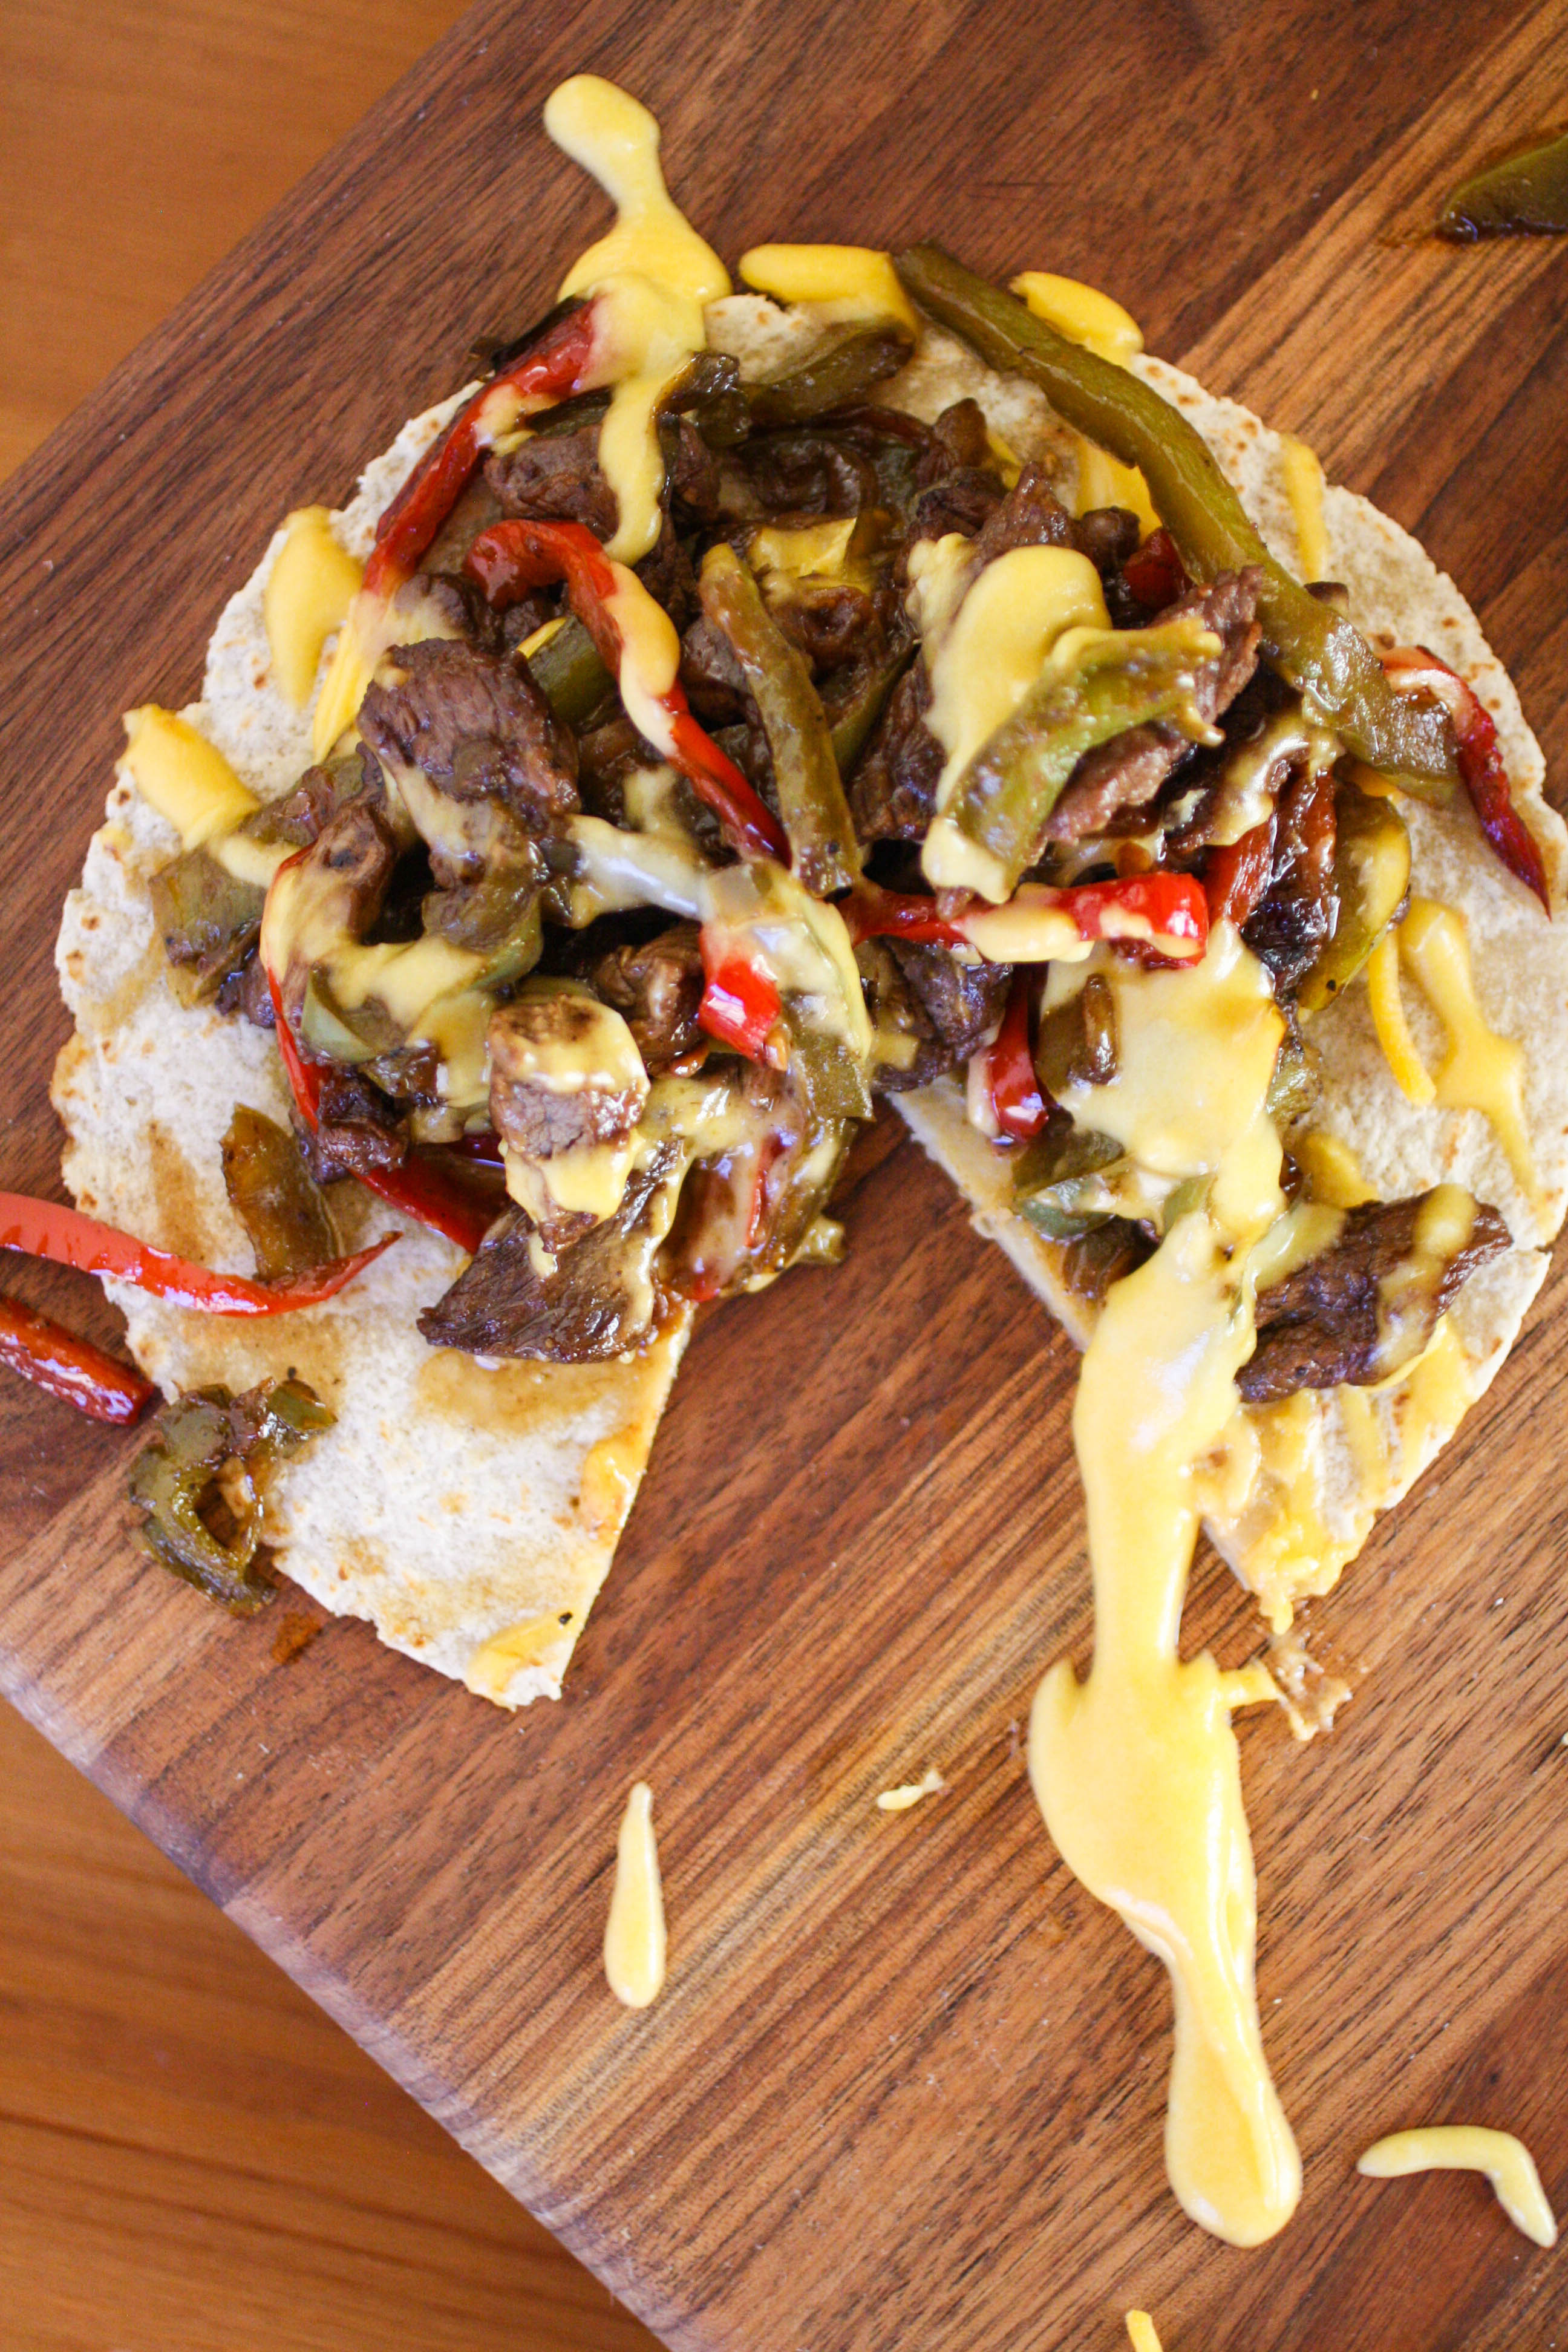 Philly Cheesesteak Tostadas are a delicious meal! You'll love these flavorful and filling Philly Cheesesteak Tostadas.